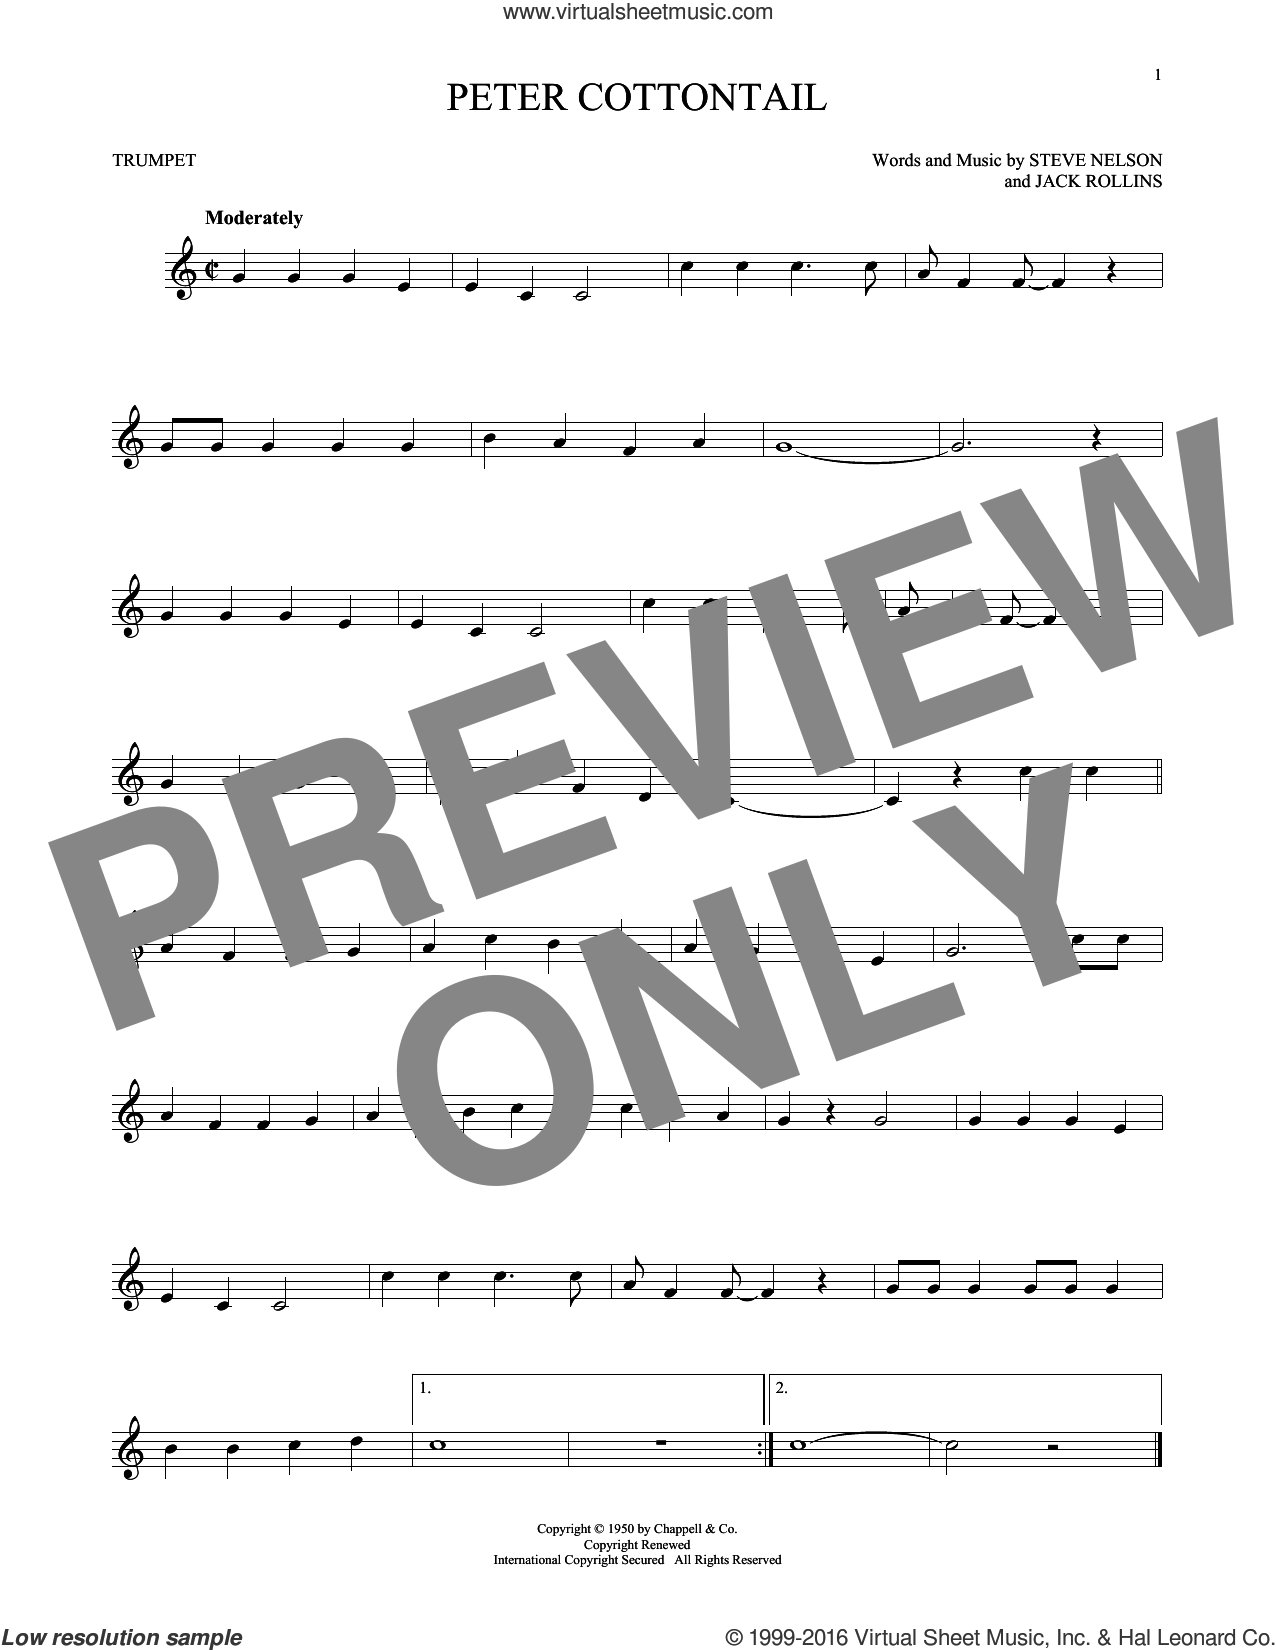 Peter Cottontail sheet music for trumpet solo by Jack Rollins and Steve Nelson. Score Image Preview.